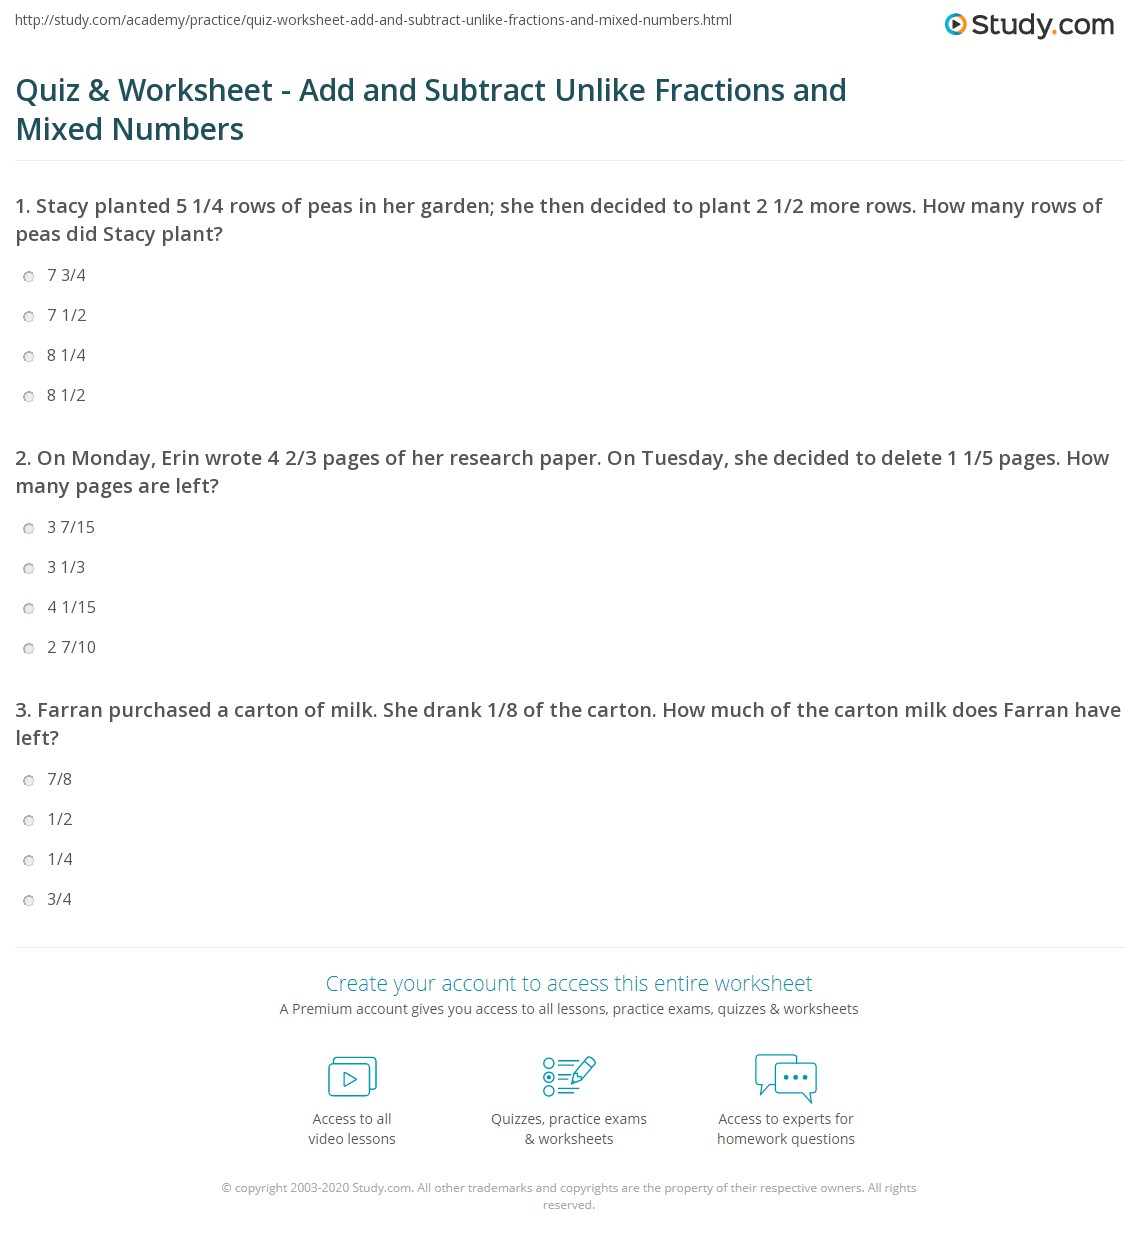 worksheet Addition And Subtraction Of Mixed Numbers Worksheets quiz worksheet add and subtract unlike fractions mixed print how to numbers worksheet